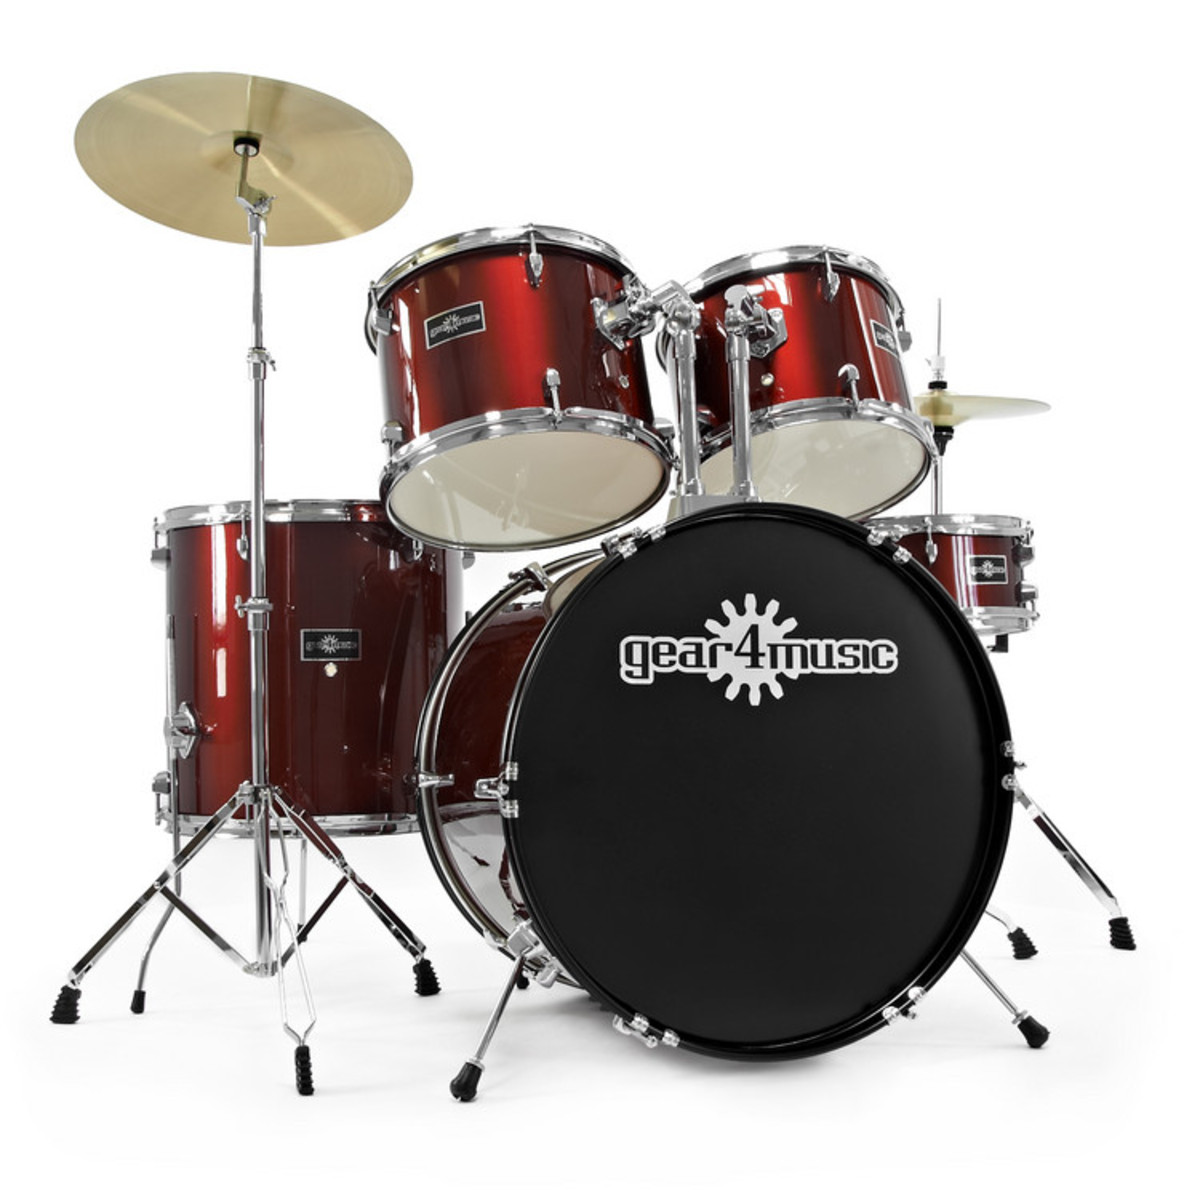 Image of GD-2 Drum Kit by Gear4music Wine Red